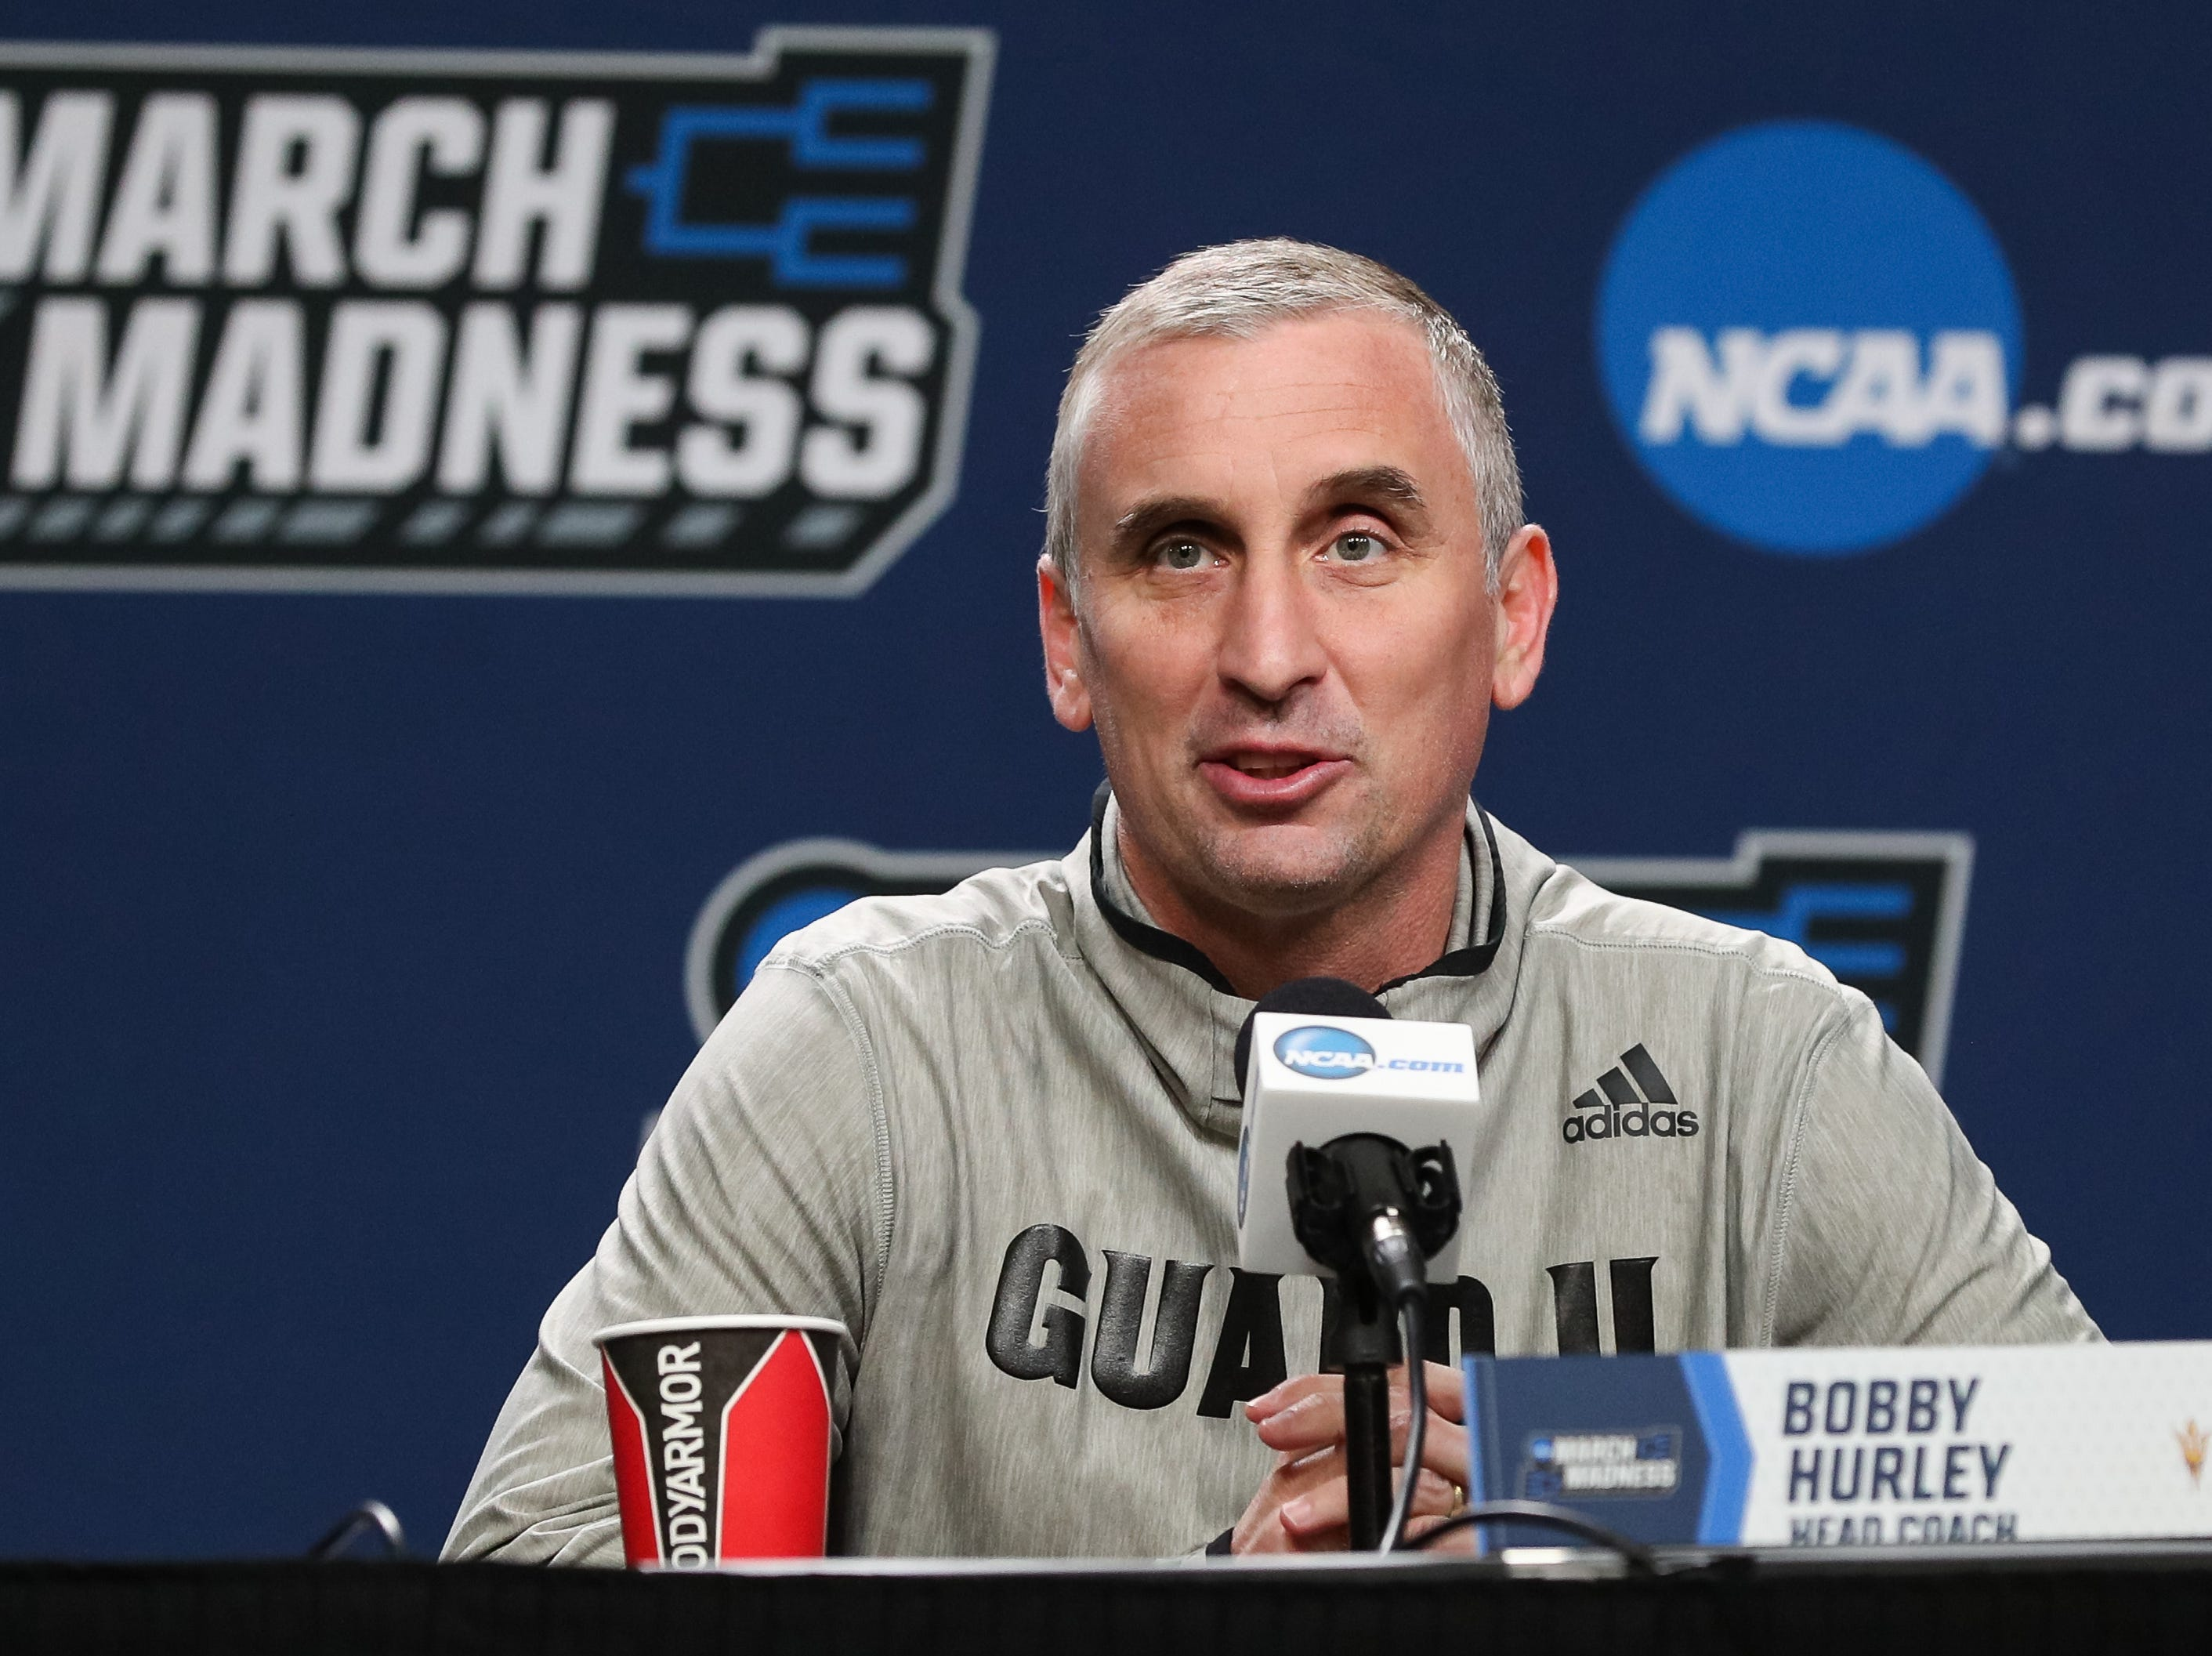 Mar 21, 2019; Tulsa, OK, USA; Arizona State Sun Devils head coach Bobby Hurley answers questions during a press conference before the first round of the 2019 NCAA Tournament at  BOK Center. Mandatory Credit: Brett Rojo-USA TODAY Sports